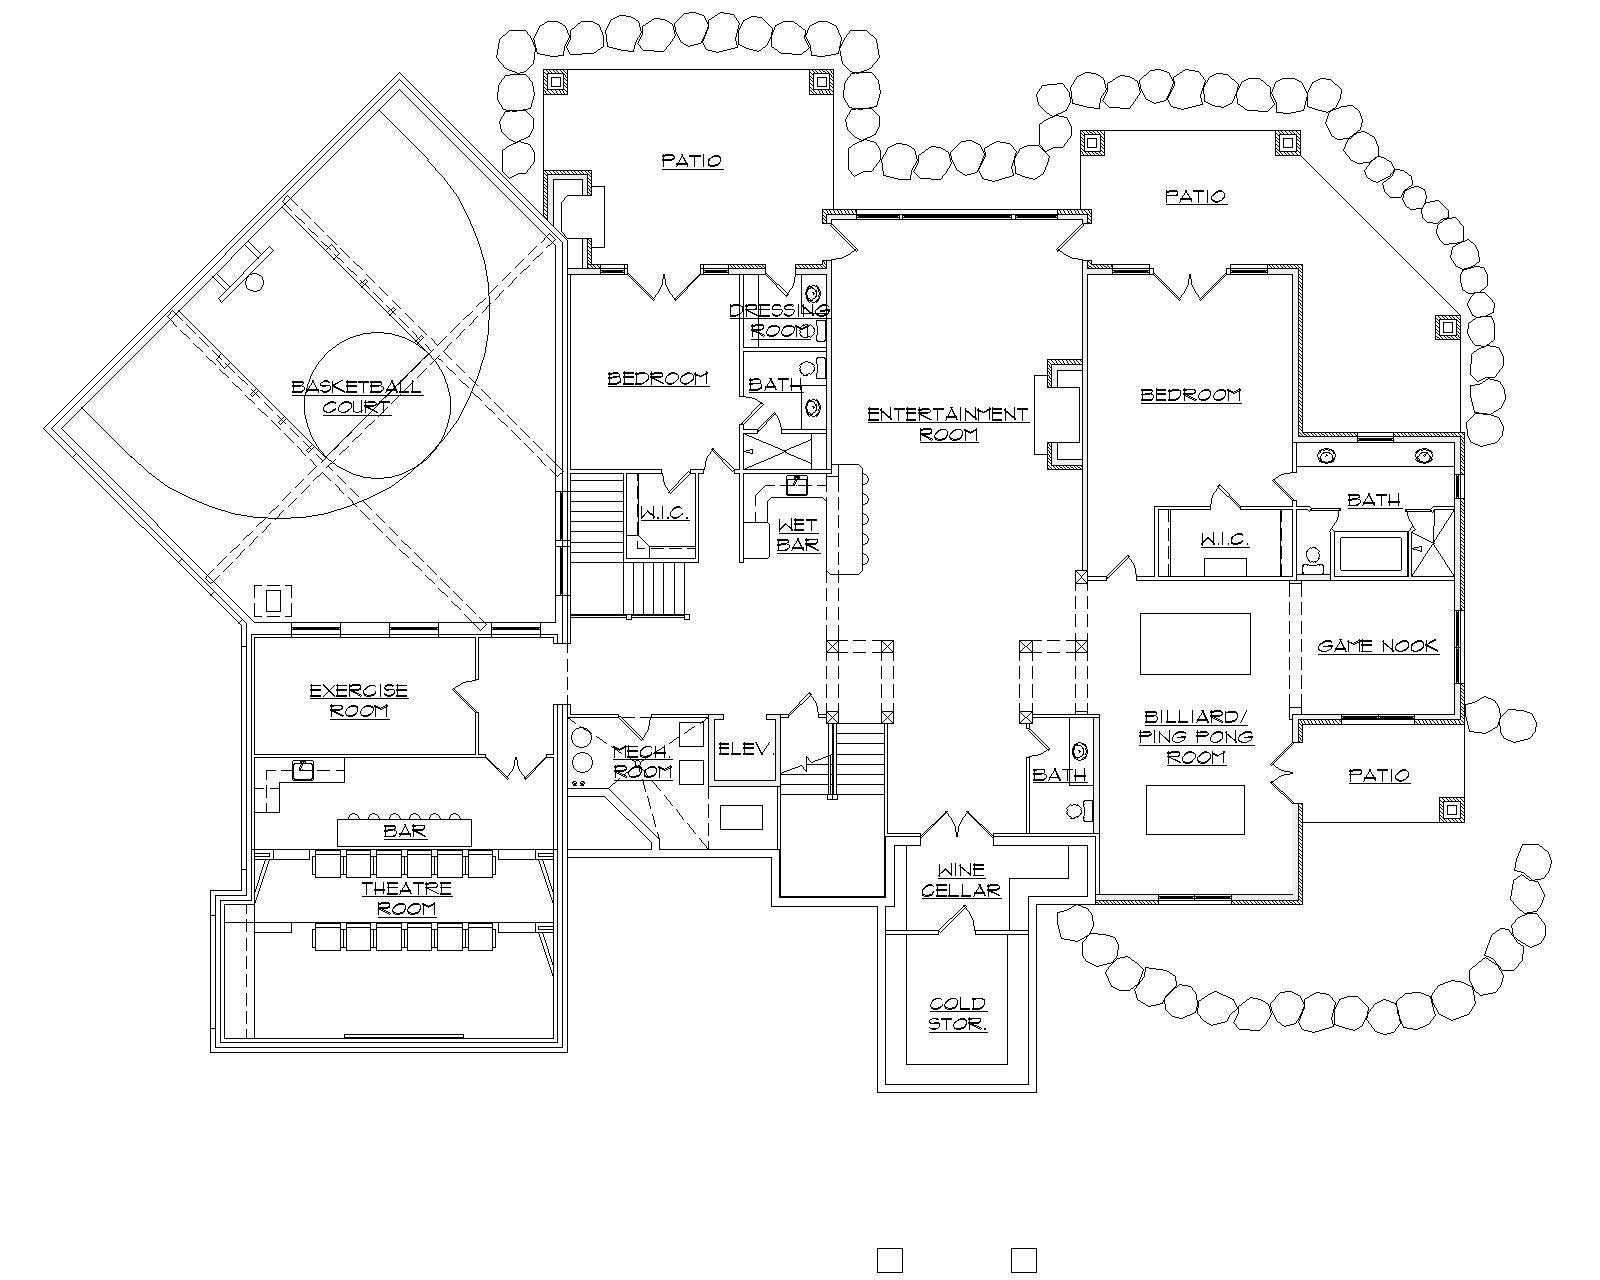 House plans with indoor basketball court how to costs for Home plans with indoor basketball court